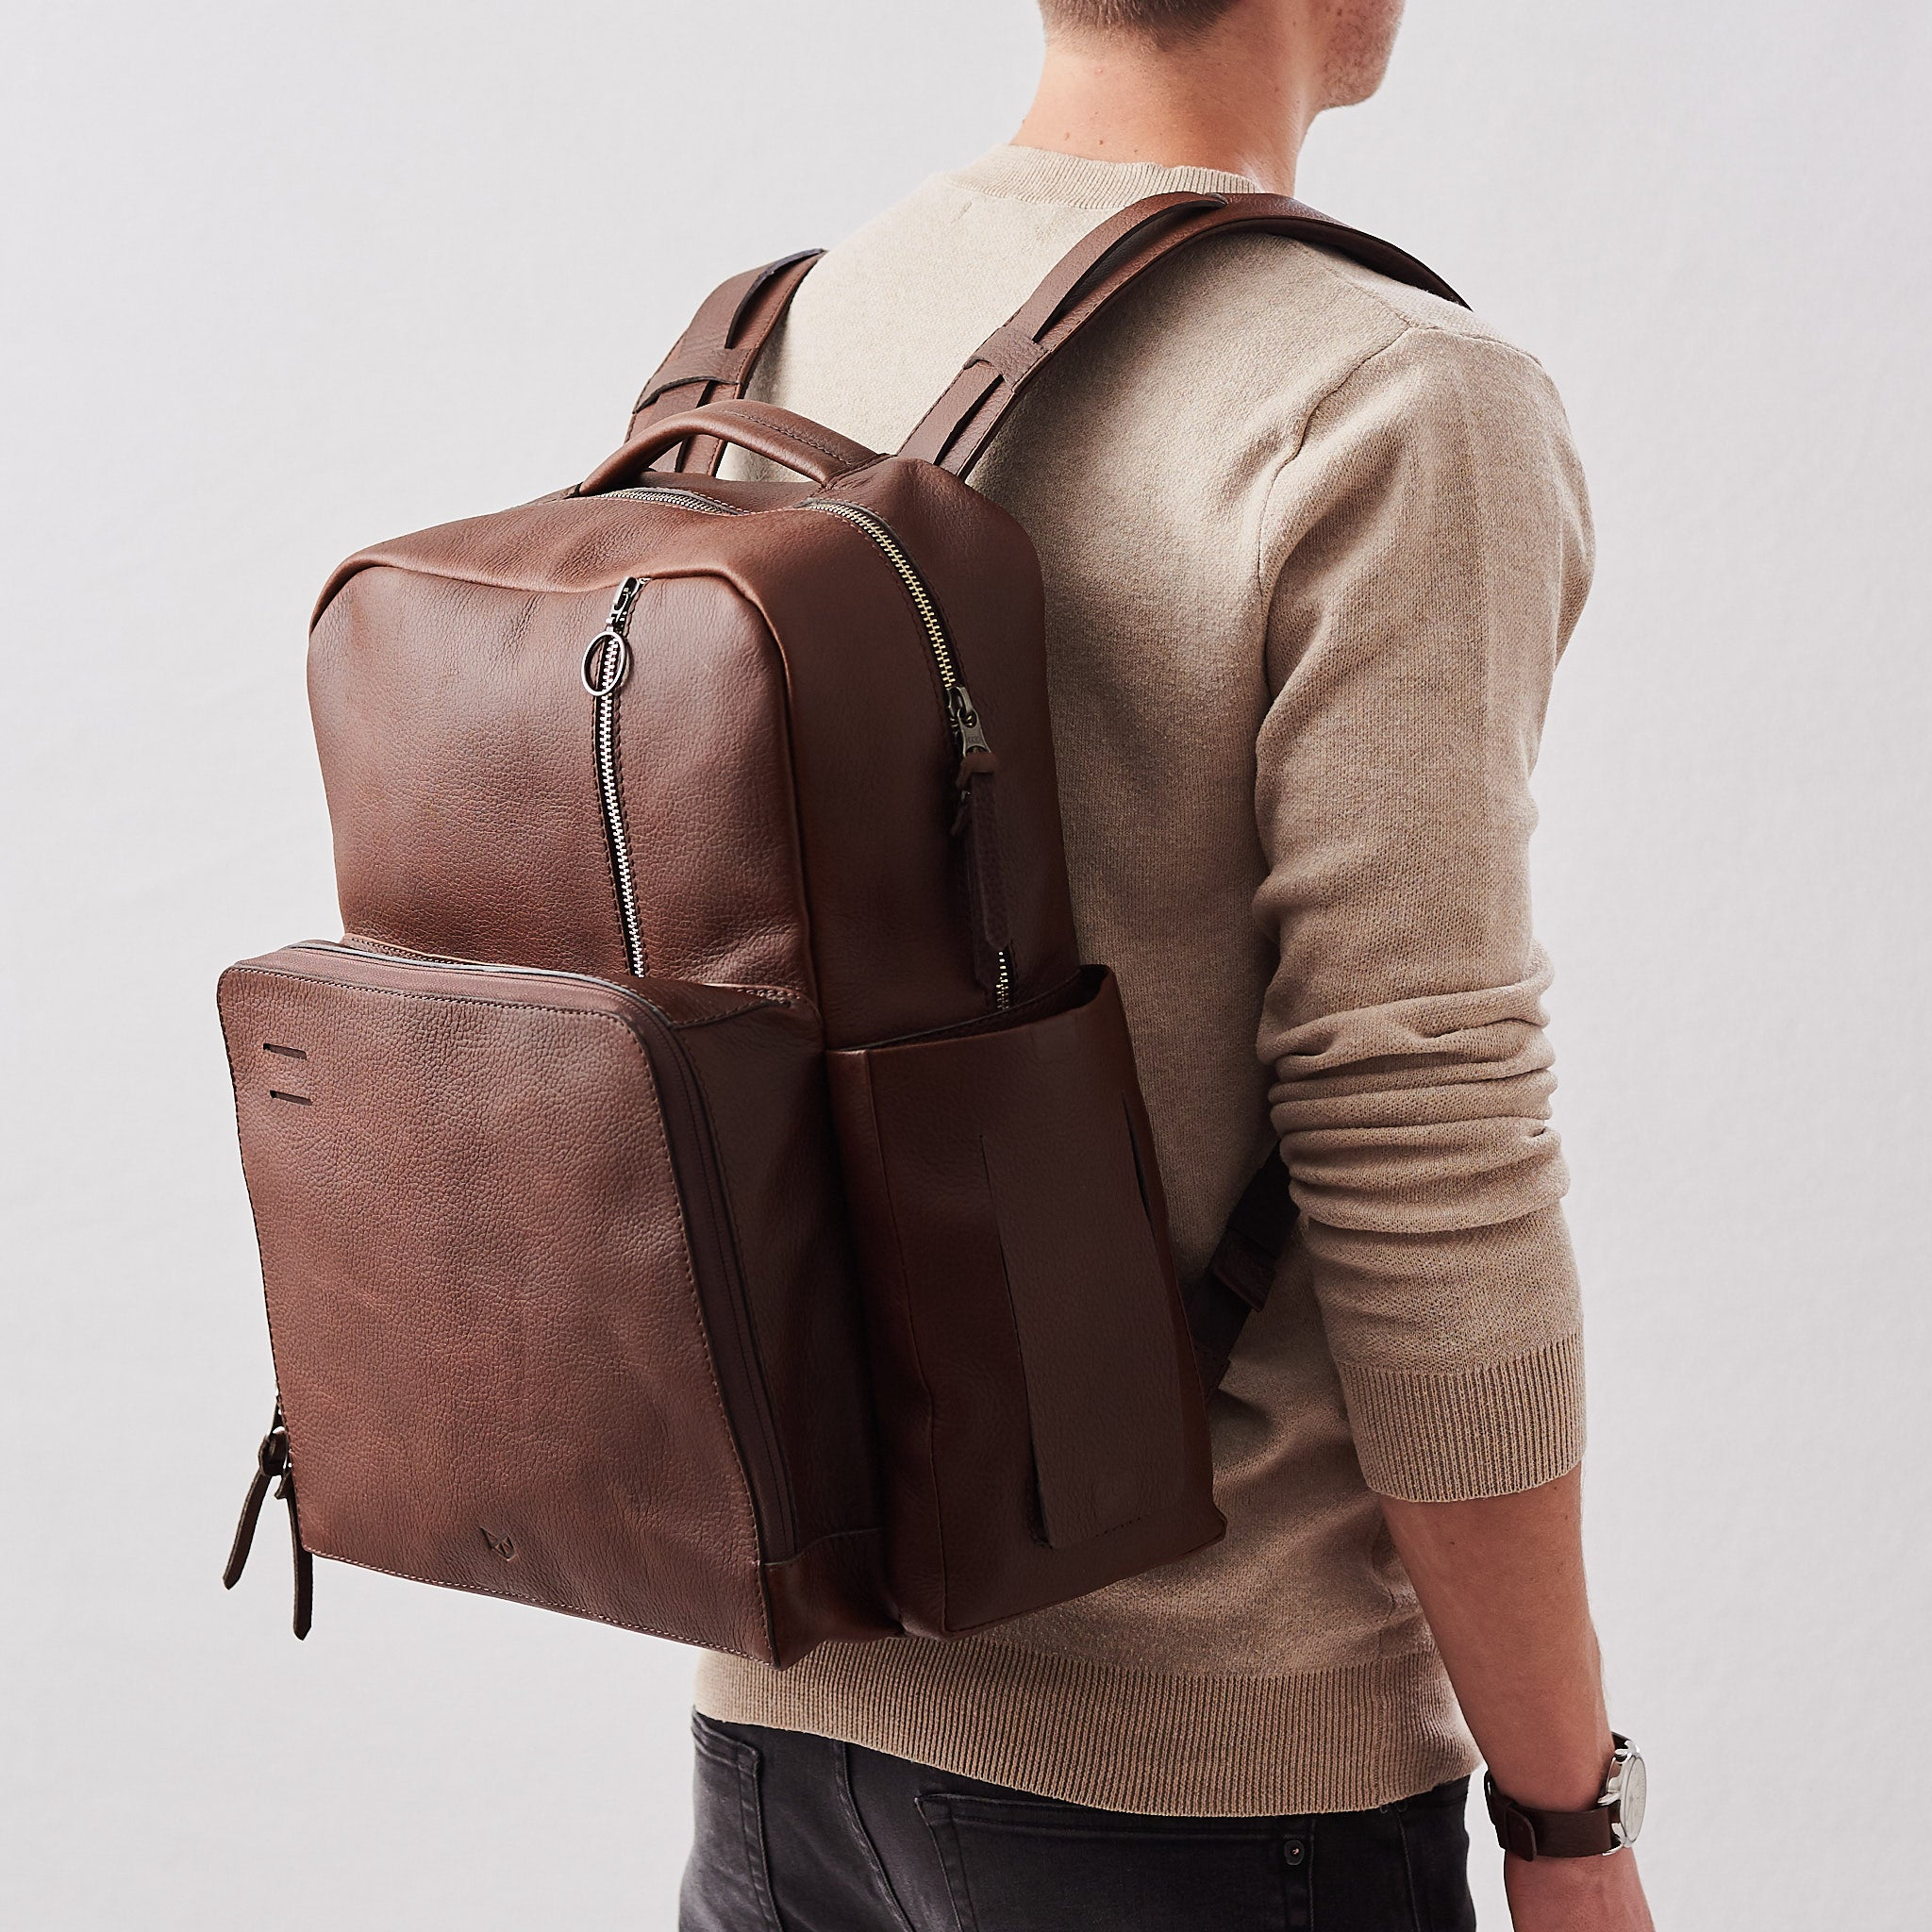 Brown Leather Diaper Bag Backpack